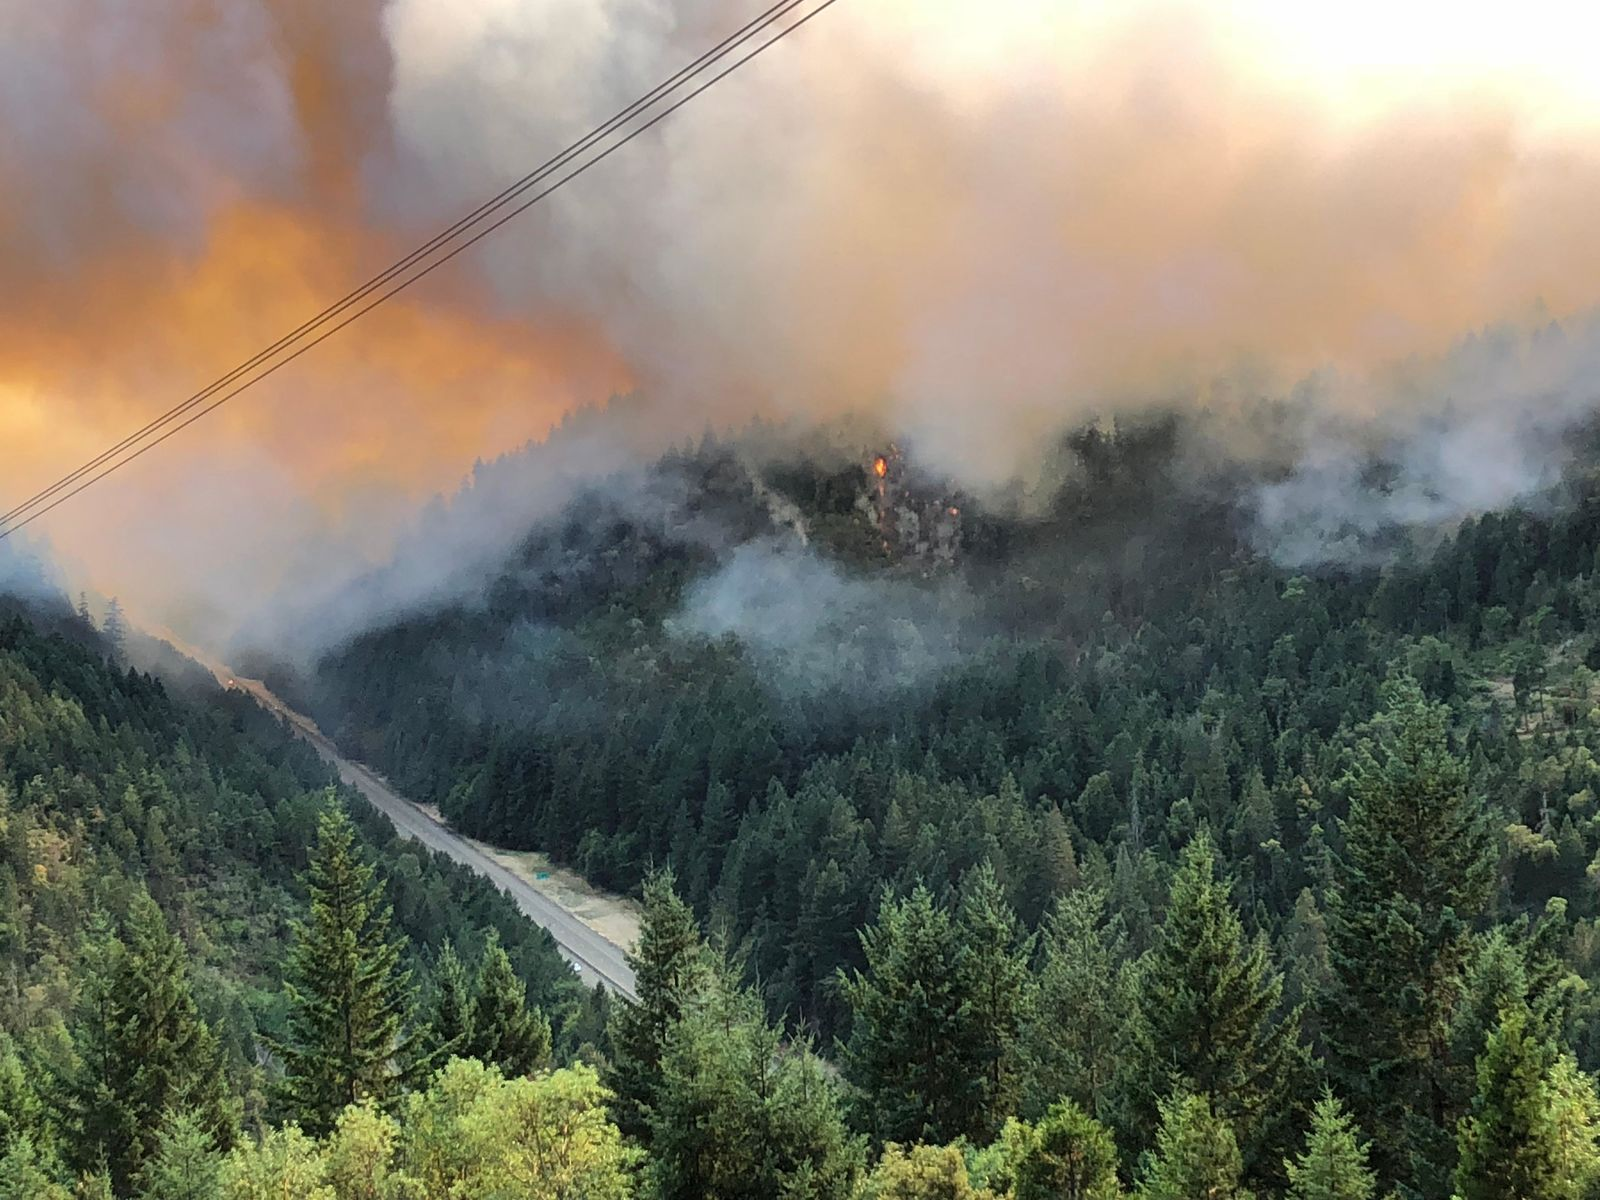 The Milepost 97 Fire burns west of Interstate 5 on July 29, 2019. (ODOT/CC by 2.0)<p></p>